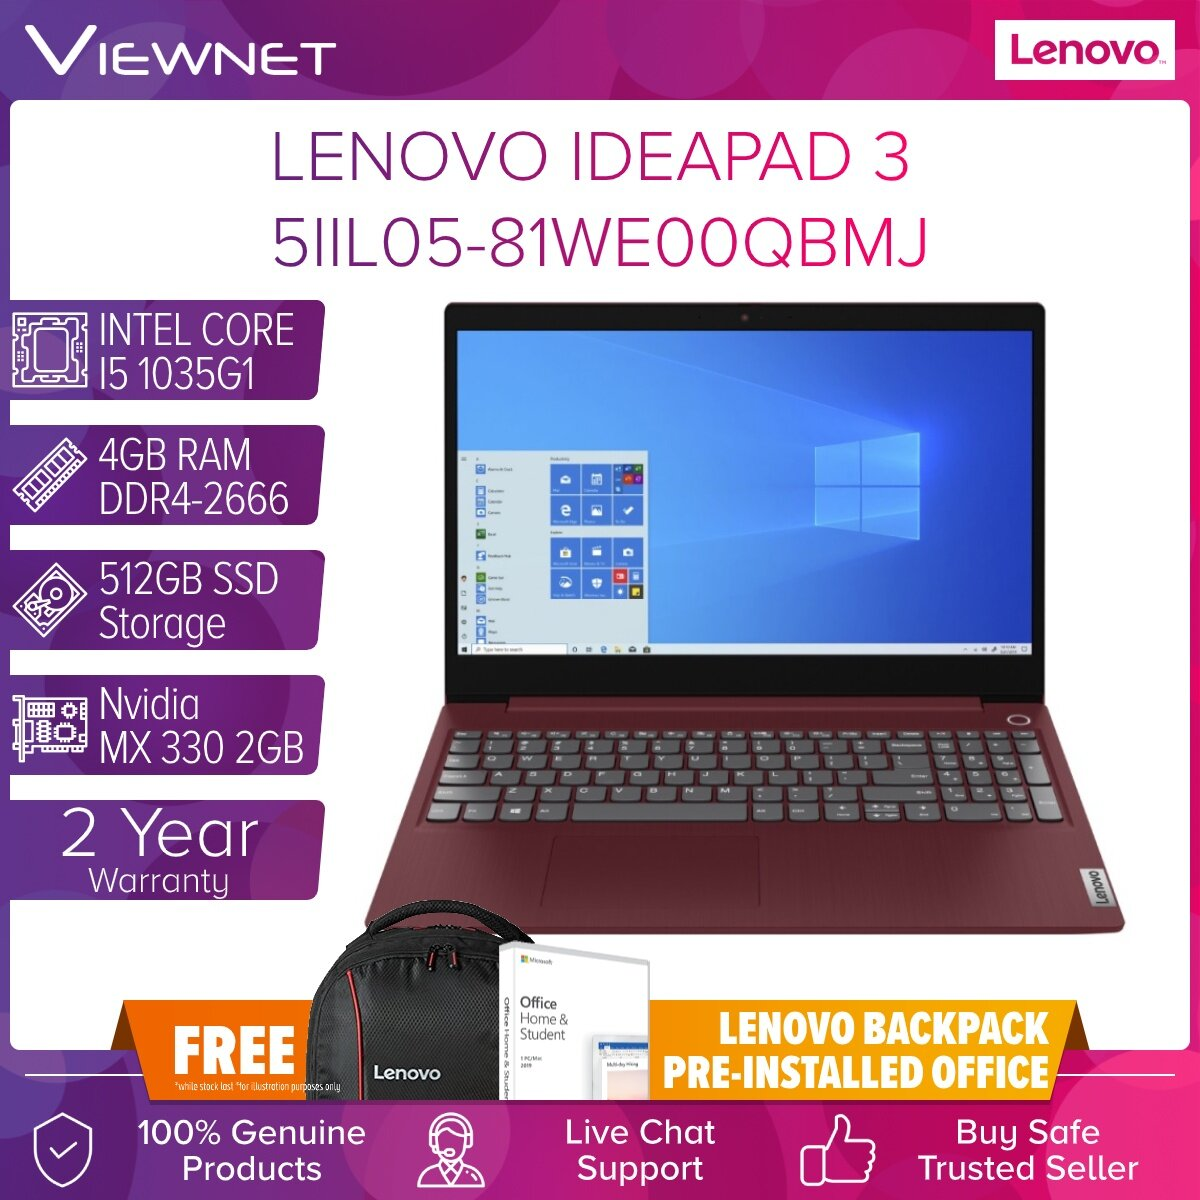 Lenovo IdeaPad 3 15IIL05 81WE00QAMJ, 81WE00QBMJ LAPTOP INTEL I5 1035G1 4GB DDR4 512GB SSD MX330 2GB 15.6